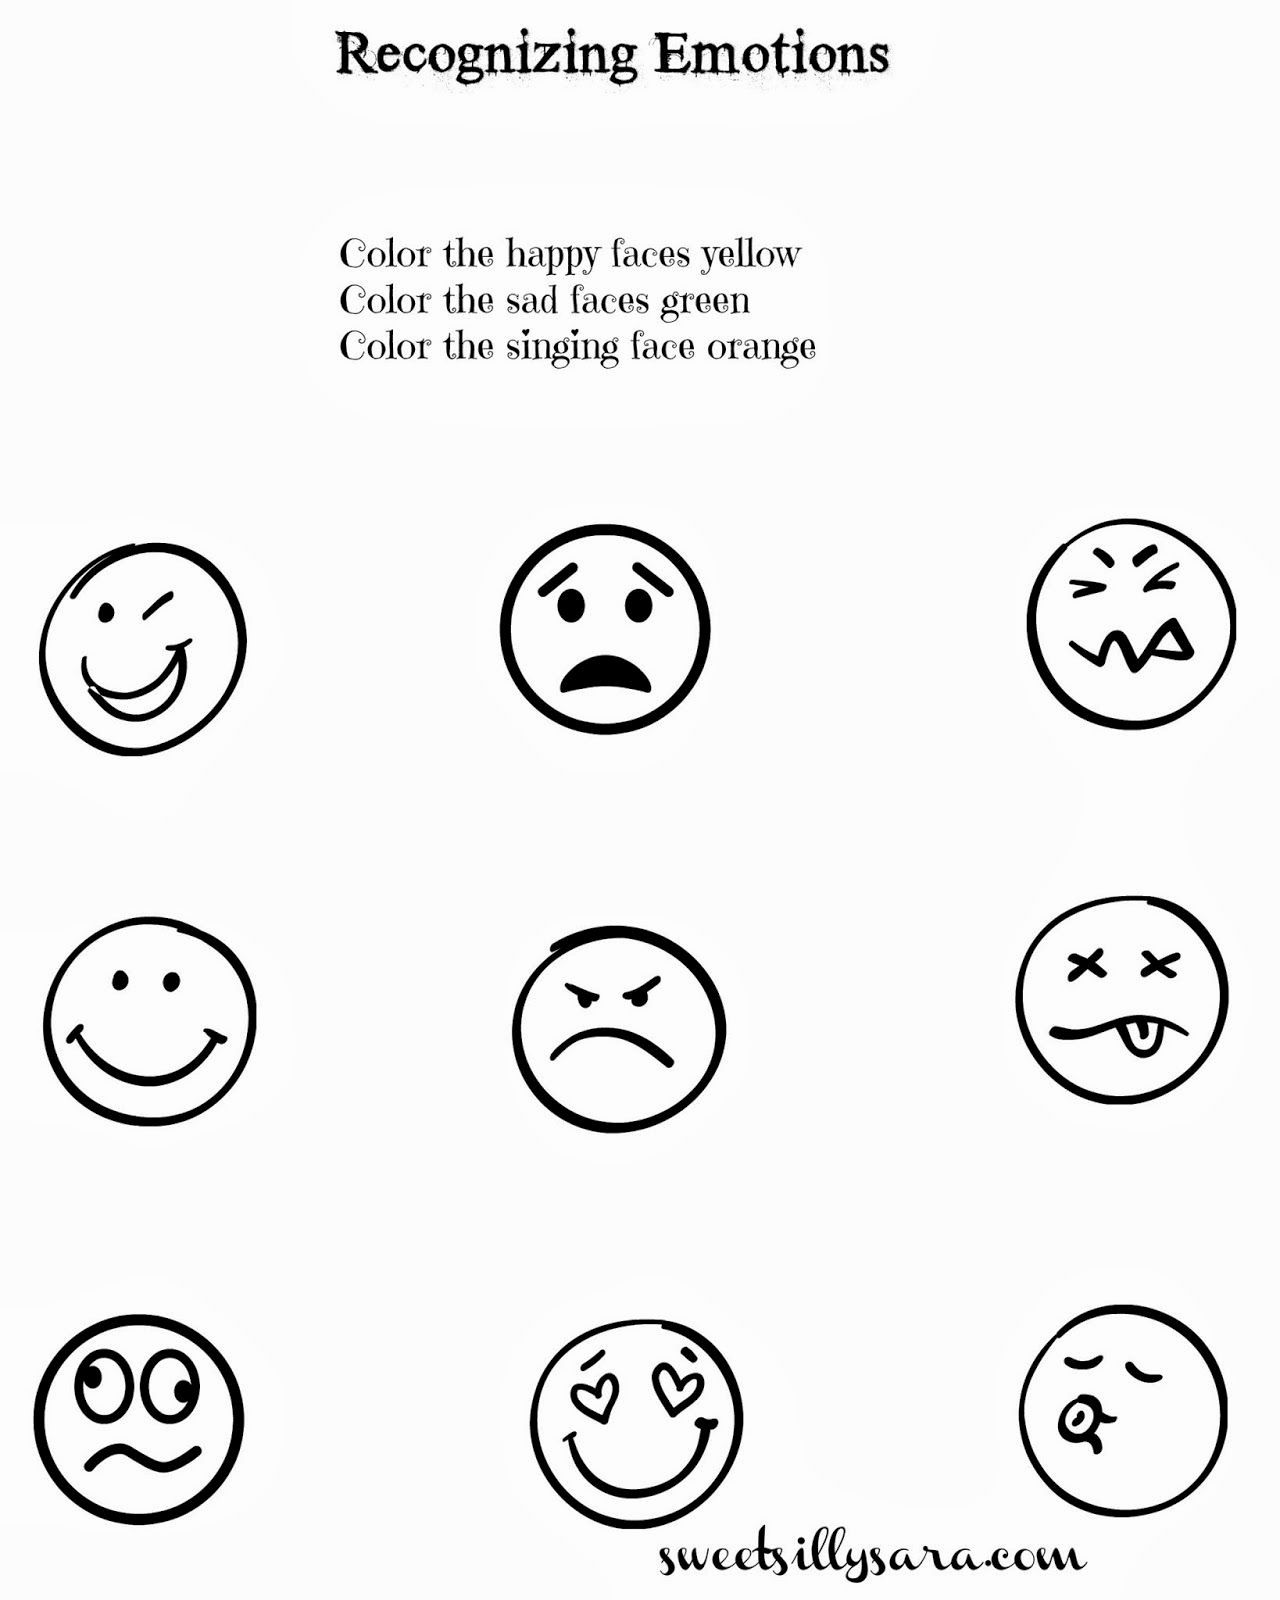 Feelings Worksheet For Preschool Student In